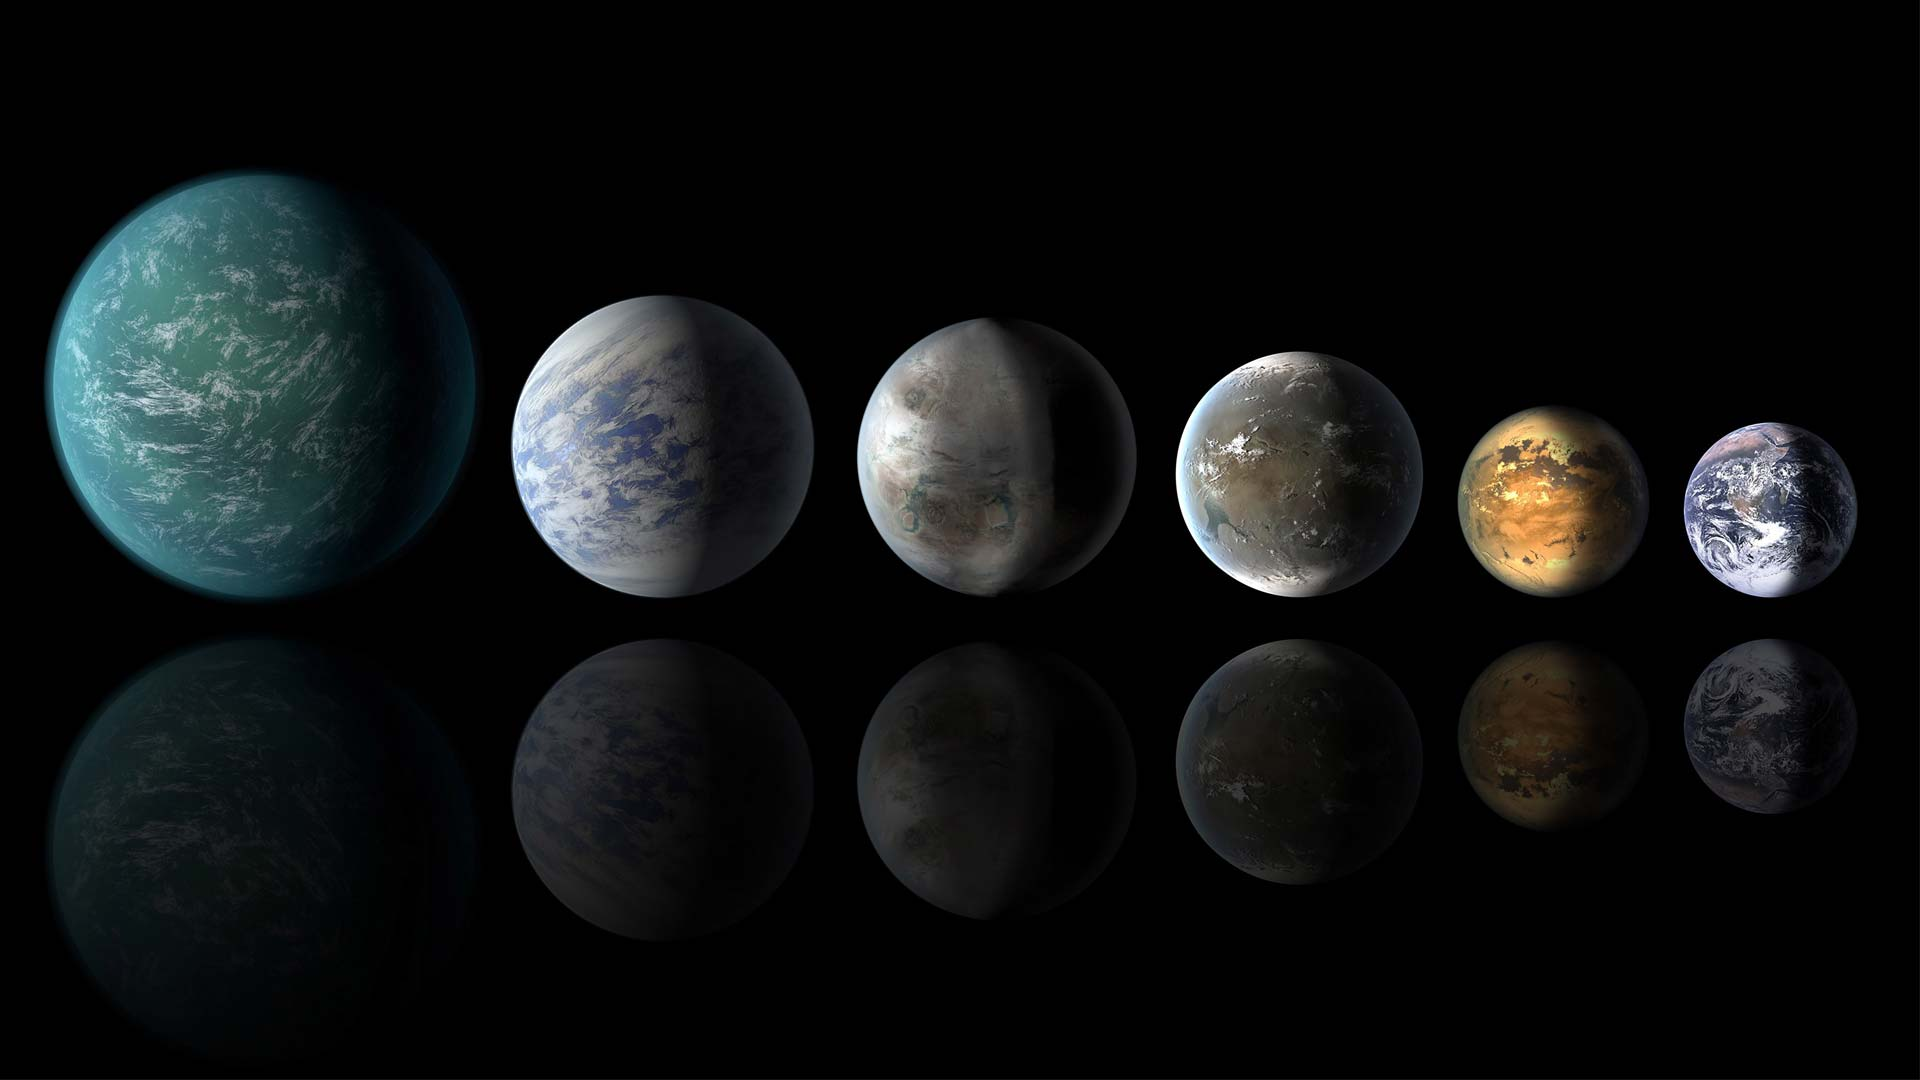 An artist's conception shows habitable-zone exoplanets with similarities to Earth: from left, Kepler-22b, Kepler-69c, Kepler-452b, Kepler-62f and Kepler-186f. Last in line is Earth itself.